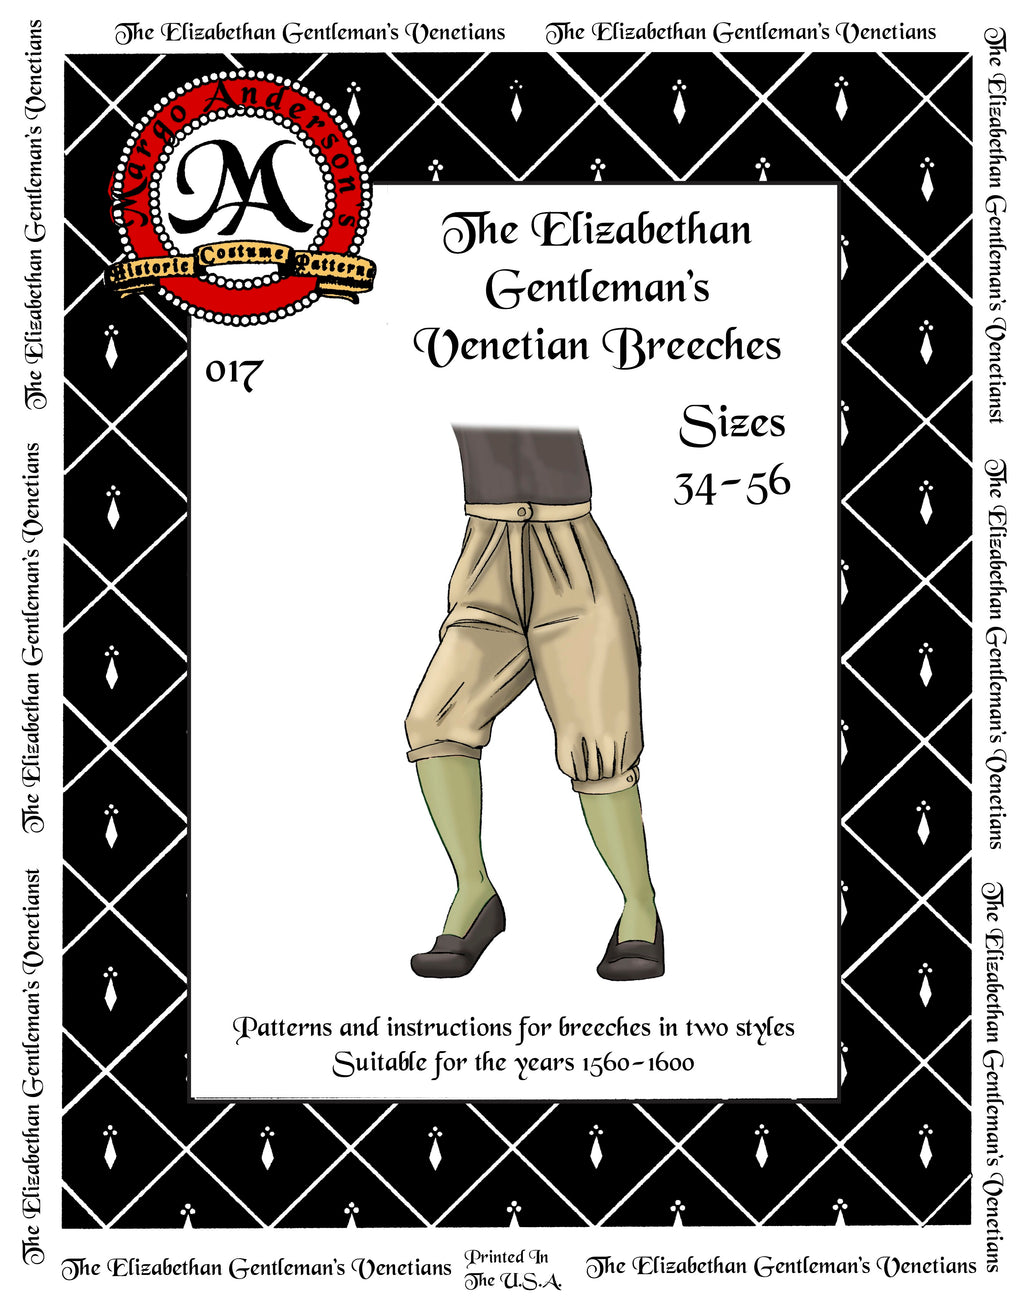 017 The Elizabethan Gentleman's Venetian Breeches